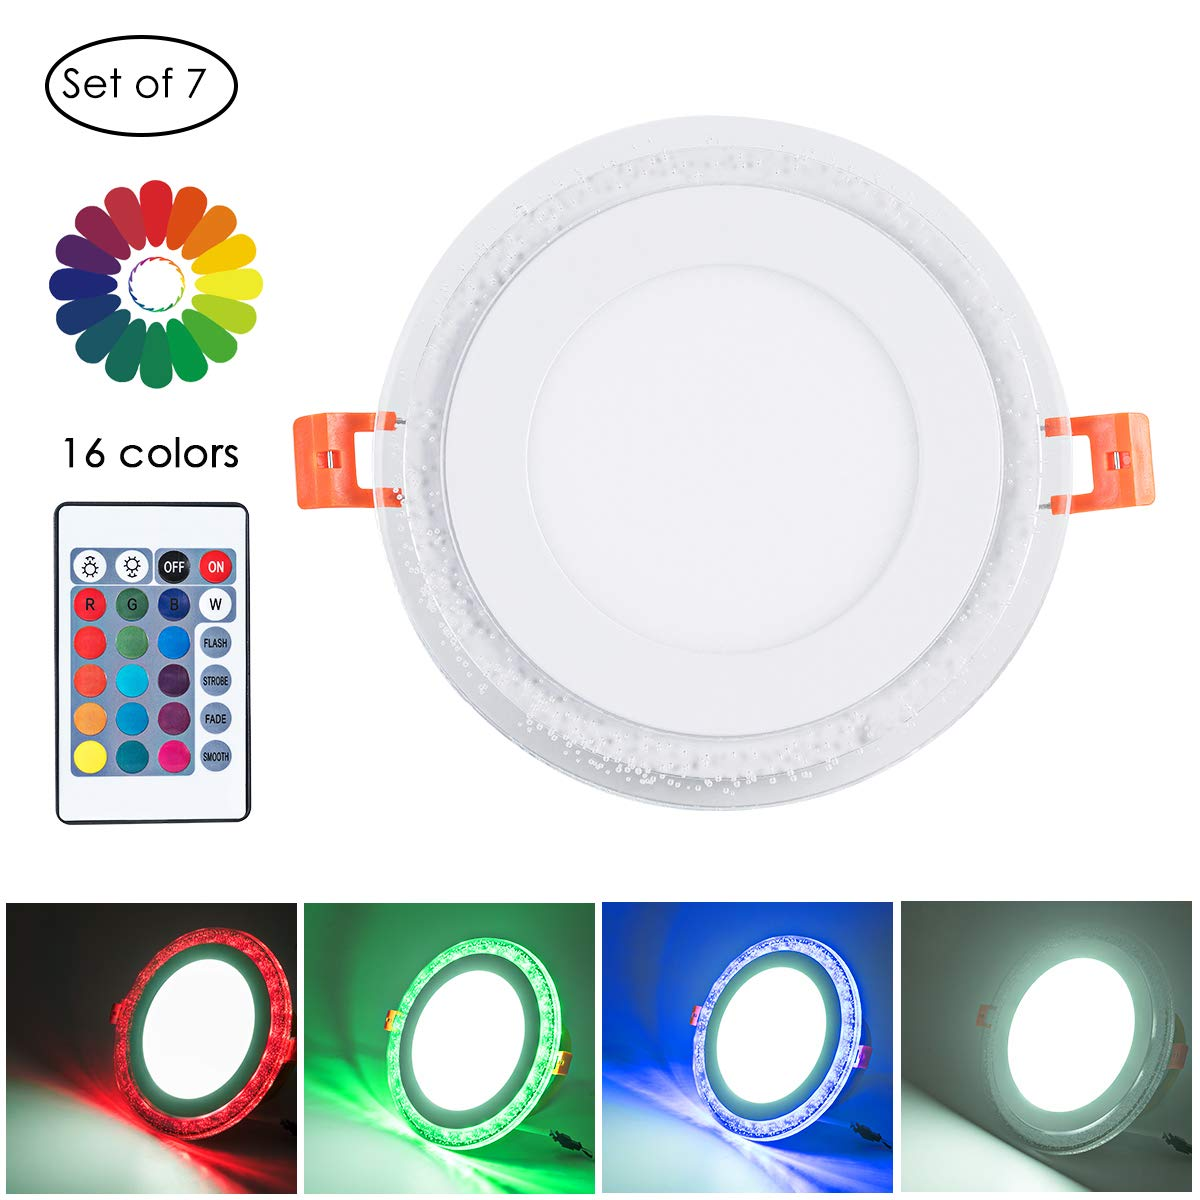 Remote Control 4'' Cool White + RGB LED Round Panel Light, Color Changing Ultra Thin Recessed Ceiling Lights with Driver, AC100-240V 6+3W, 6500K Cool White+RGB for Office, Home, Living Room, Pack of 7